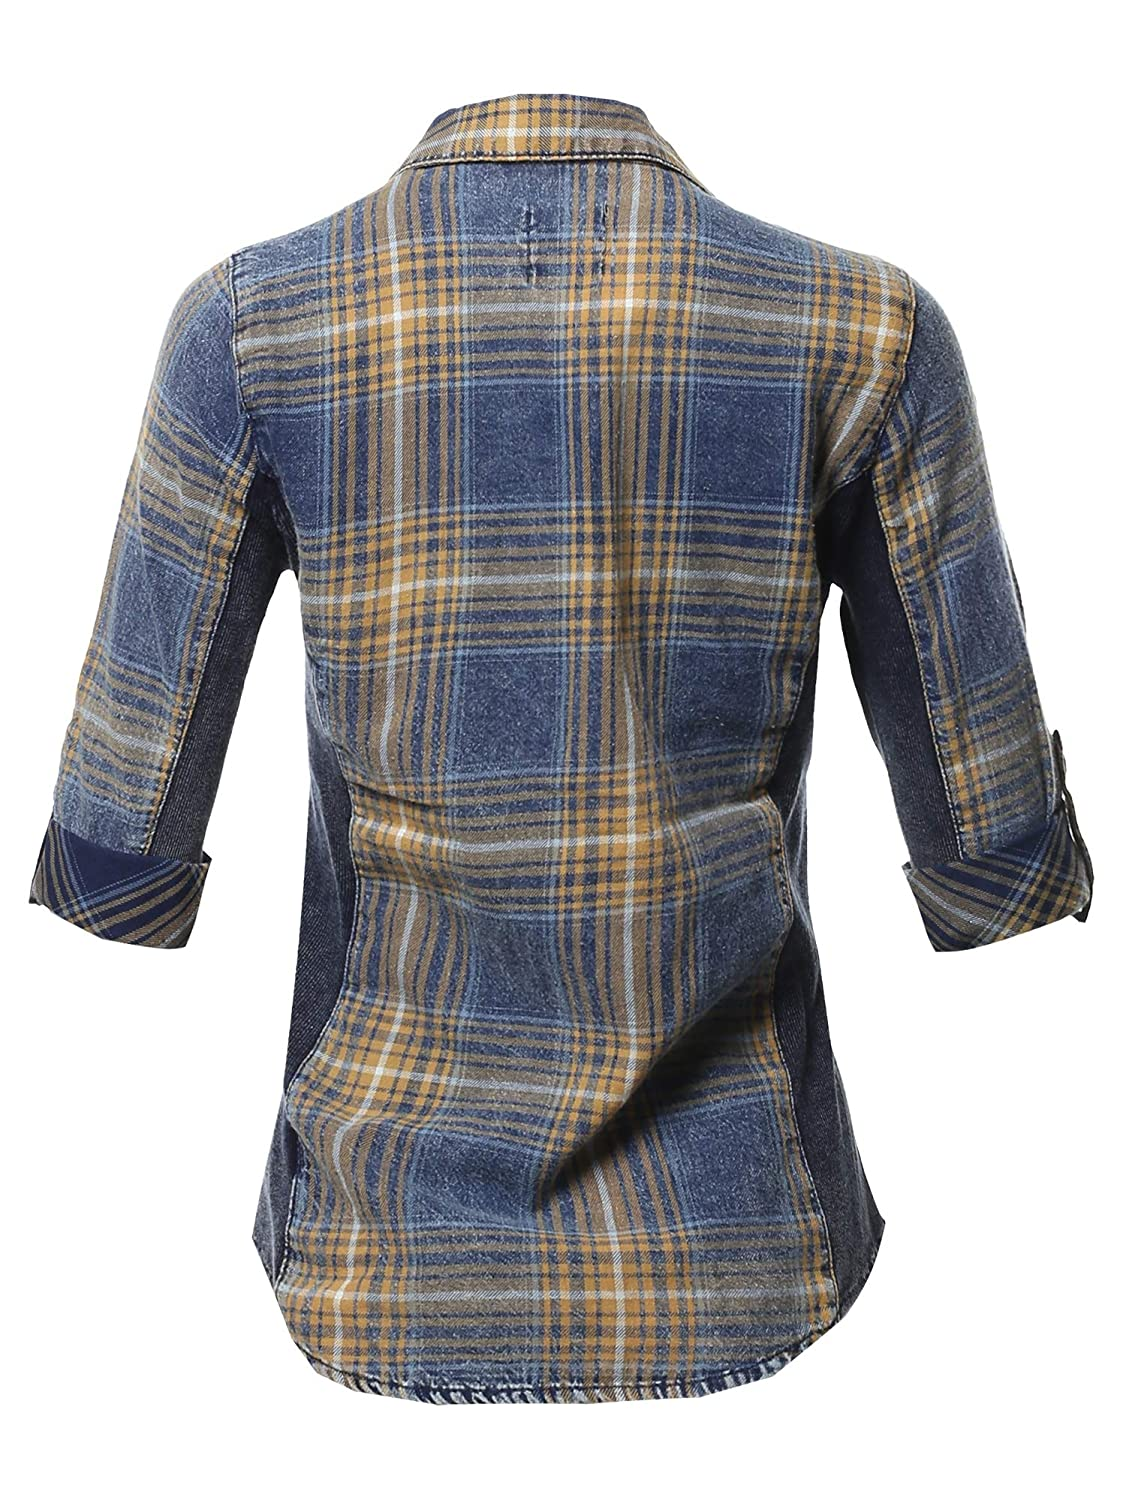 Made by Emma Womens Junior Fit Basic Button Closure Roll Up Sleeves Chest Pocket Denim Chambray